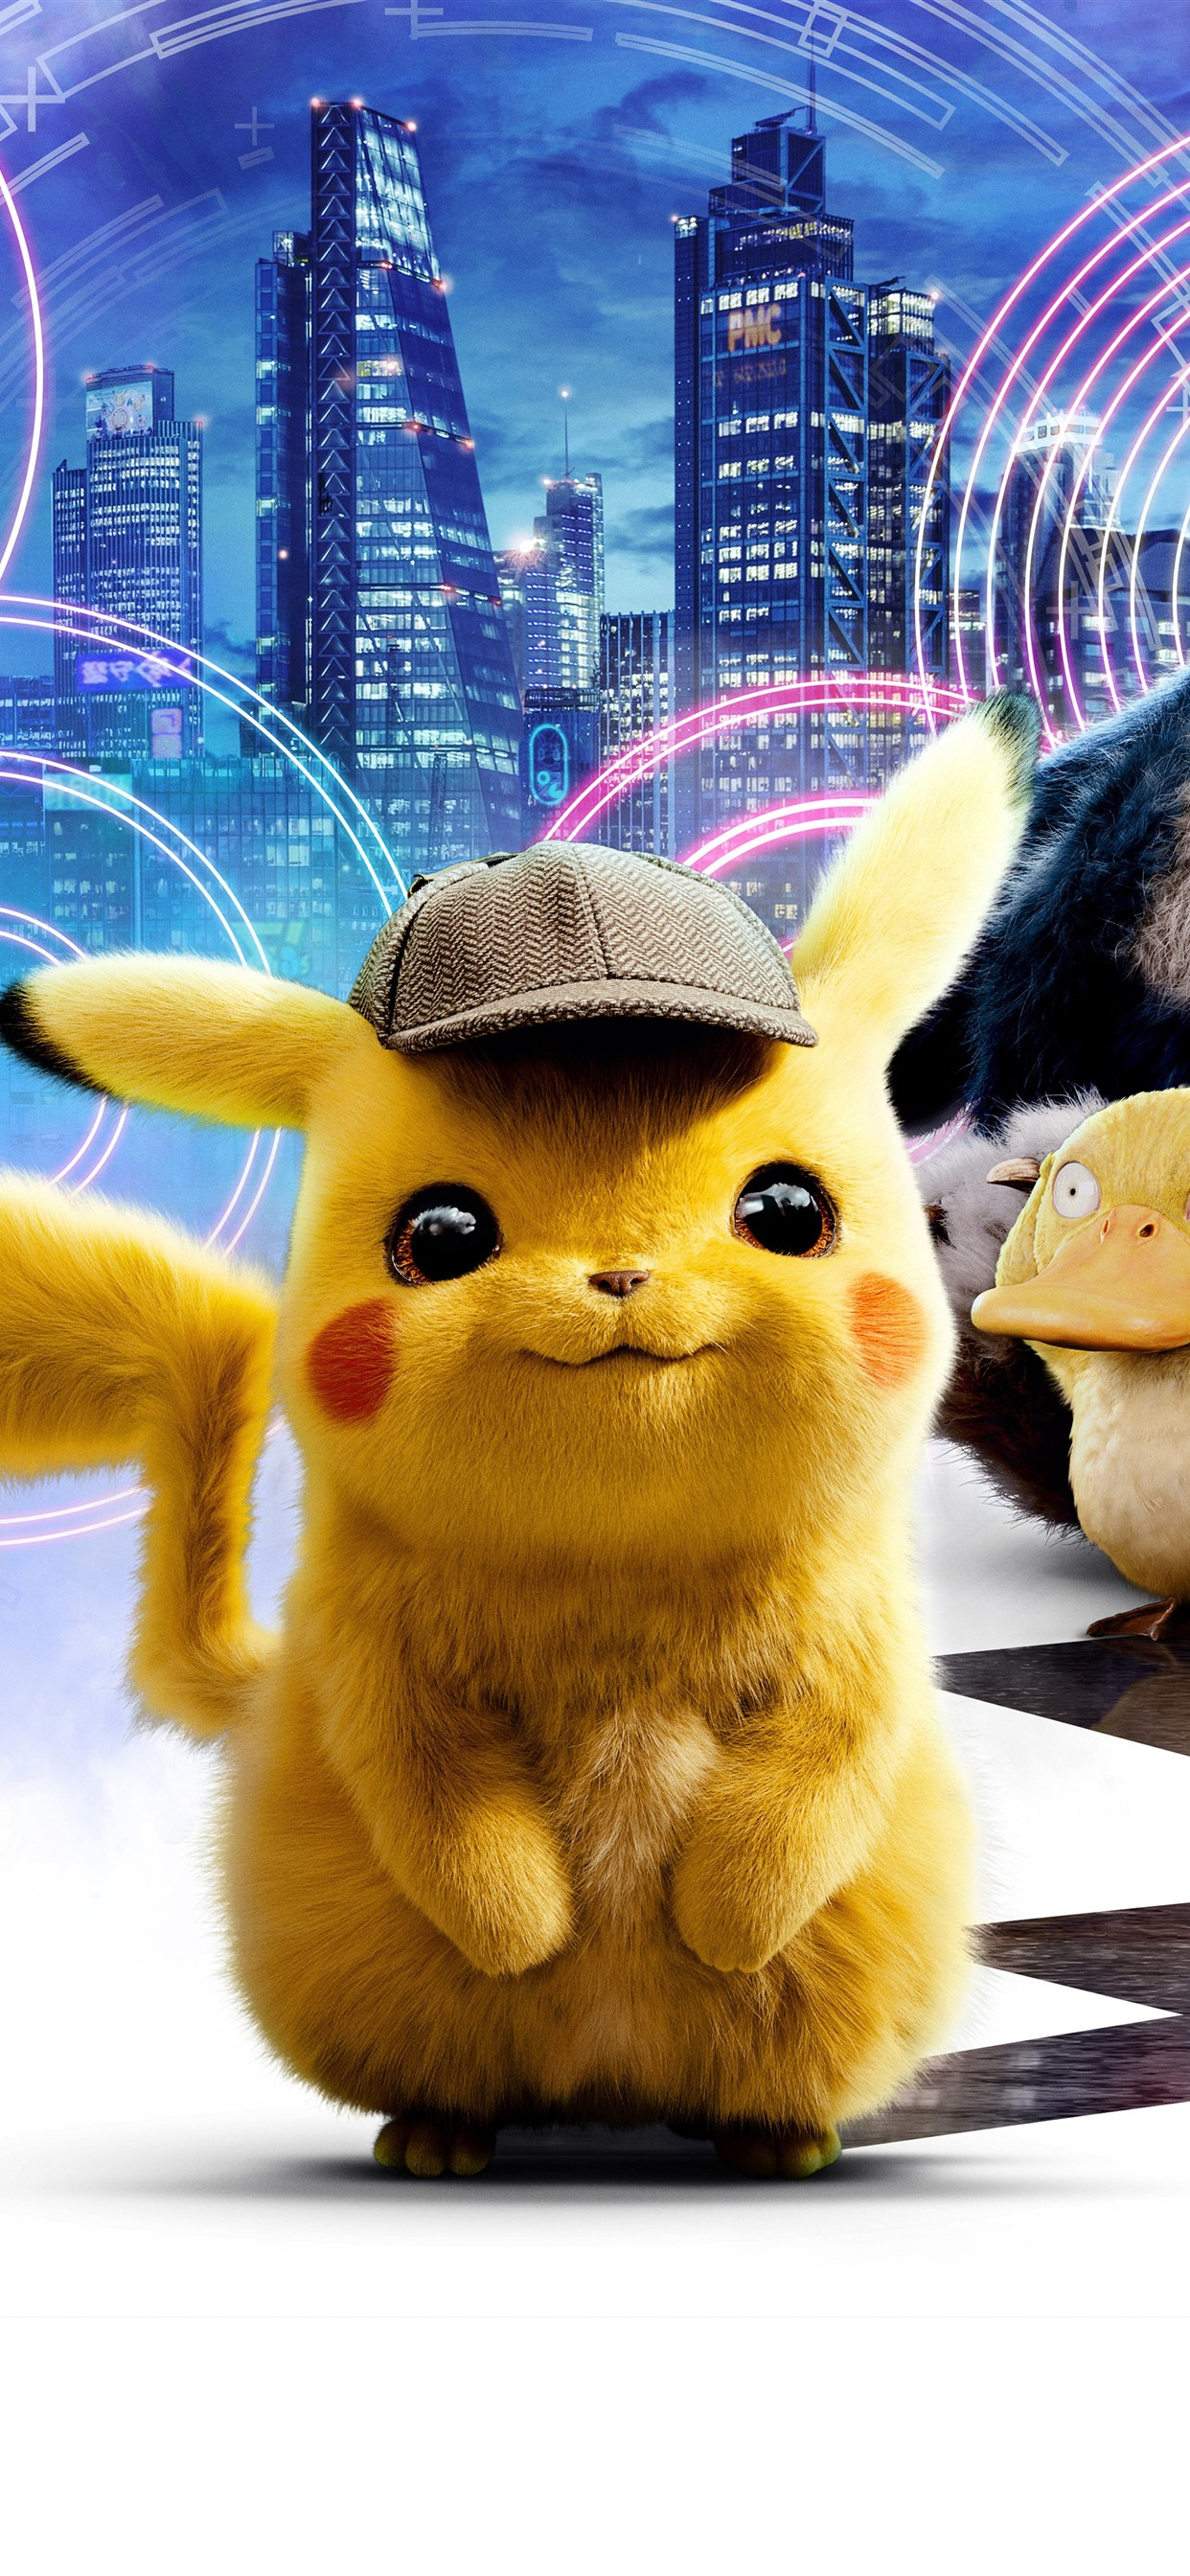 Wallpaper 2019 Movie Pokemon Detective Pikachu 7680x4320